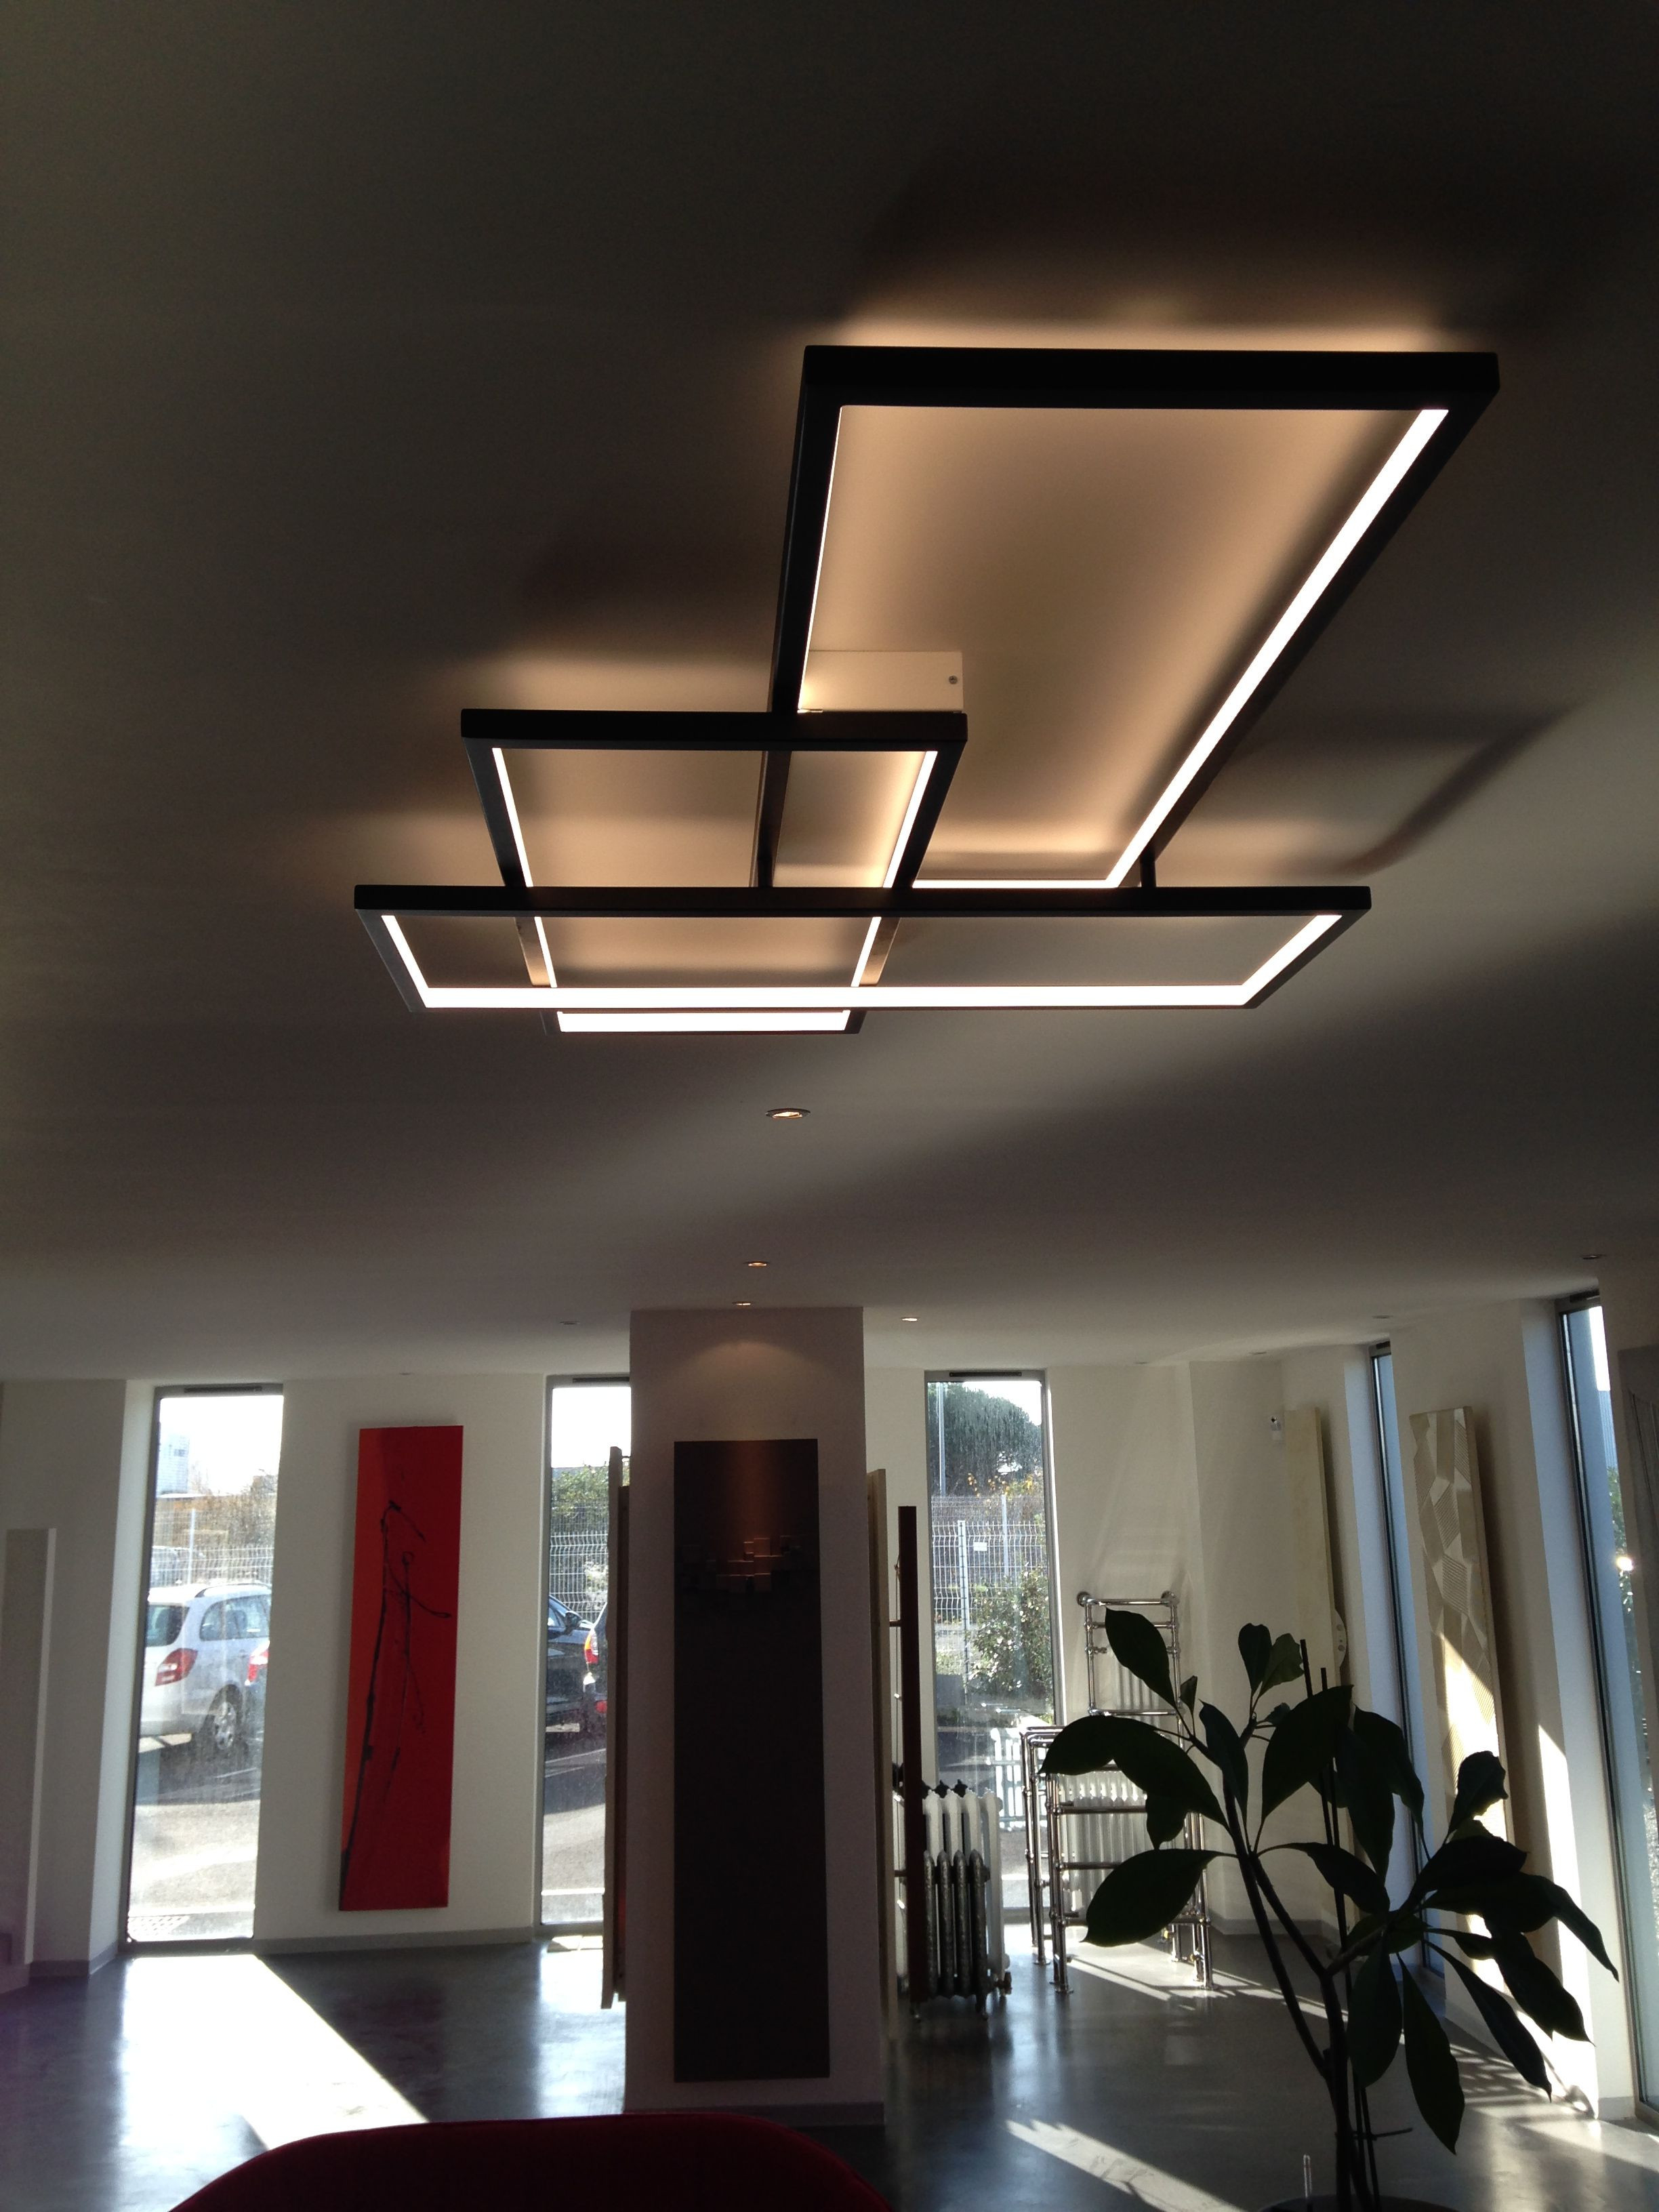 Unique Ceiling Design the Trio Lt A Product that Bines A High Quality Led